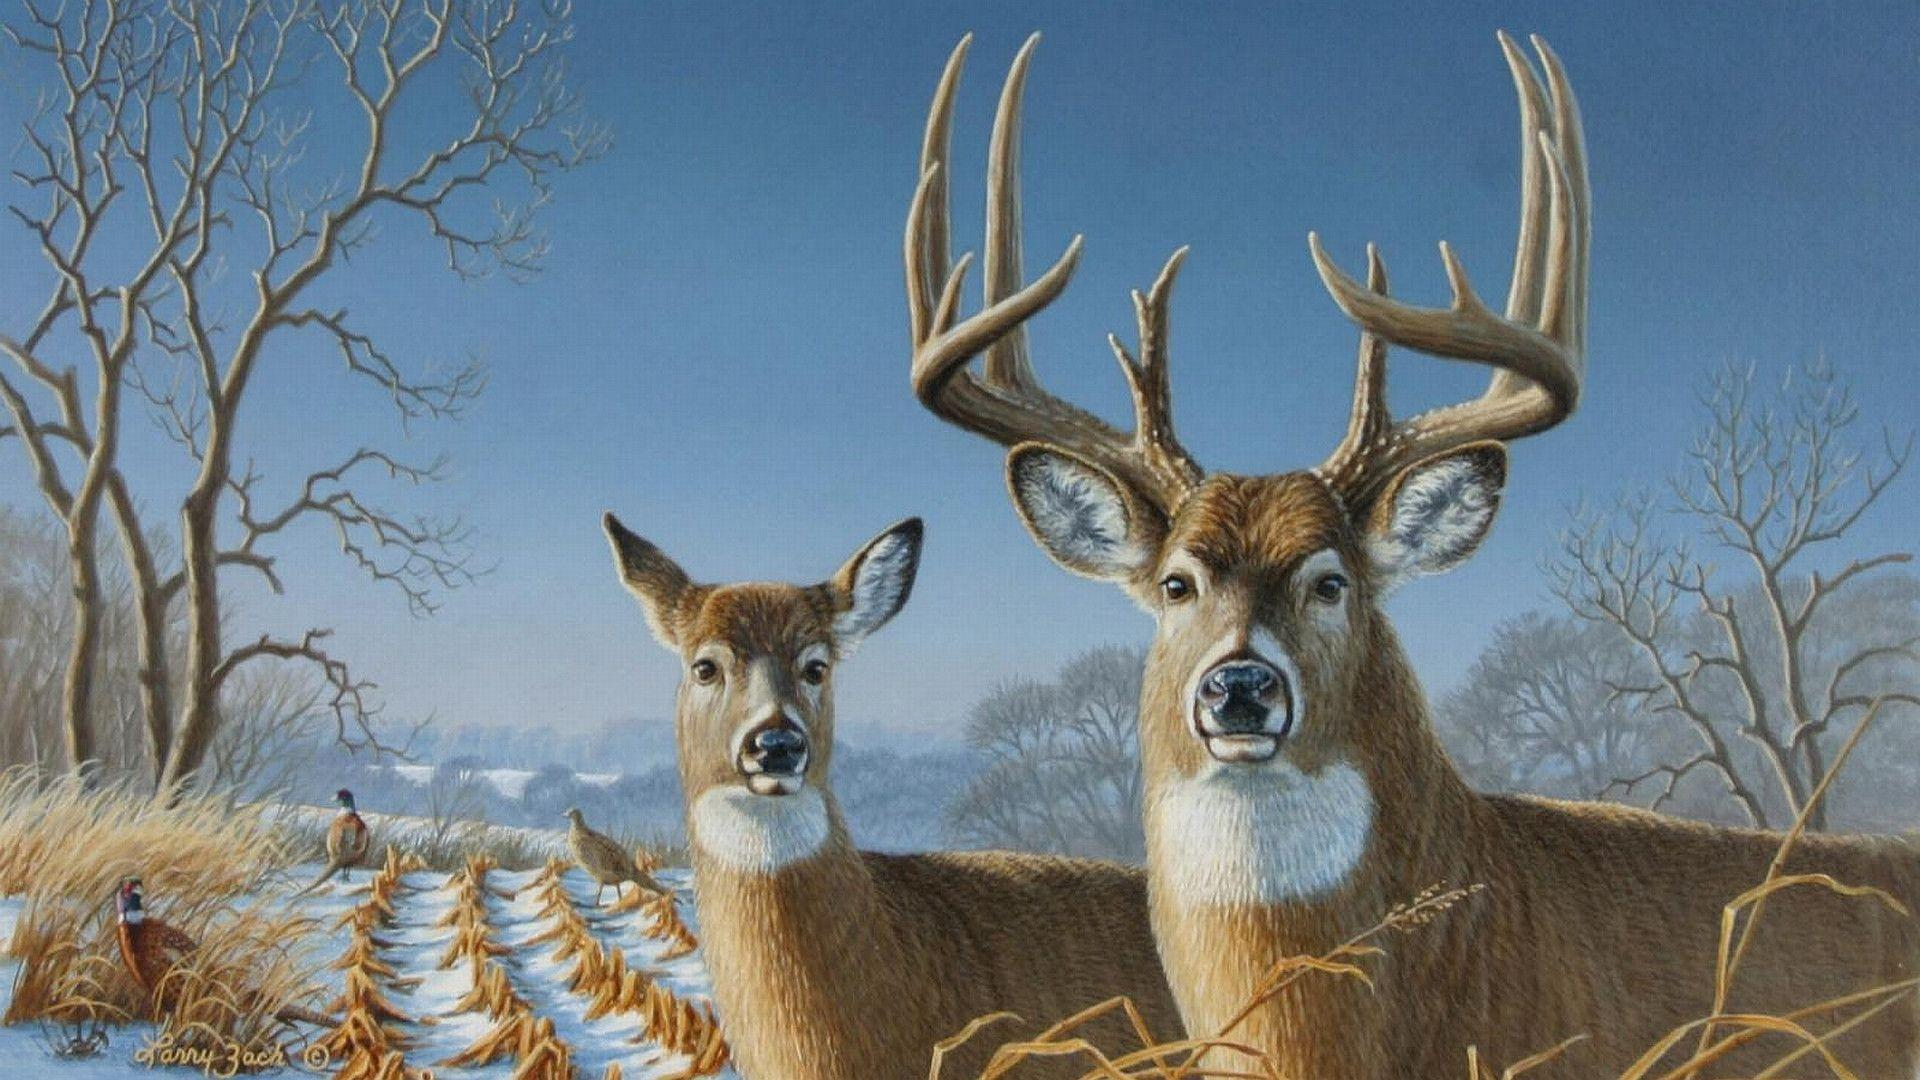 Deer HD Wallpapers Images Pictures Photos Download